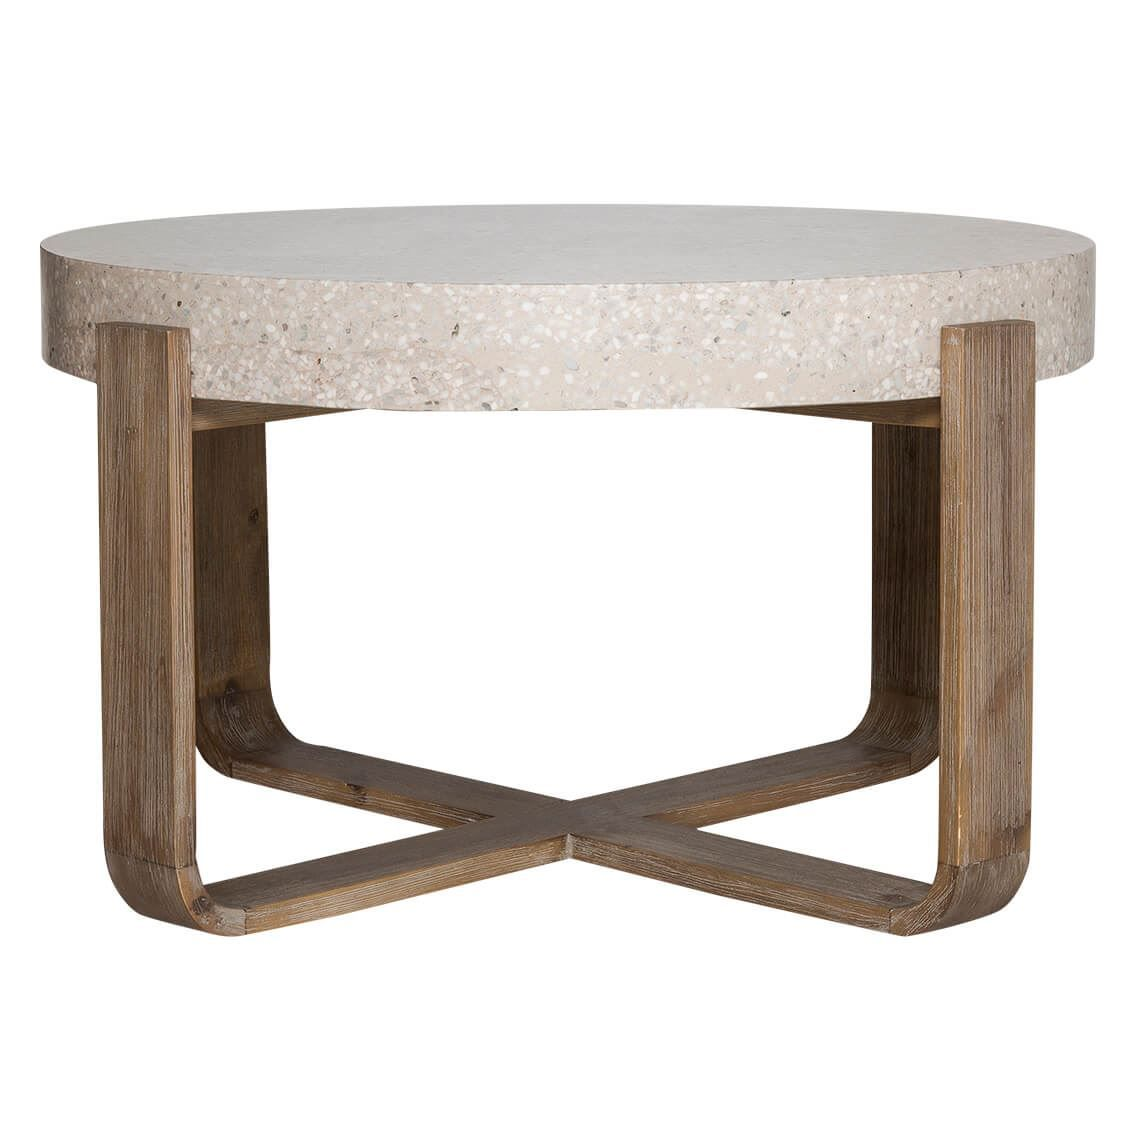 Incredible Bodhi Coffee Table Stone In 2019 Products Furniture Download Free Architecture Designs Terchretrmadebymaigaardcom